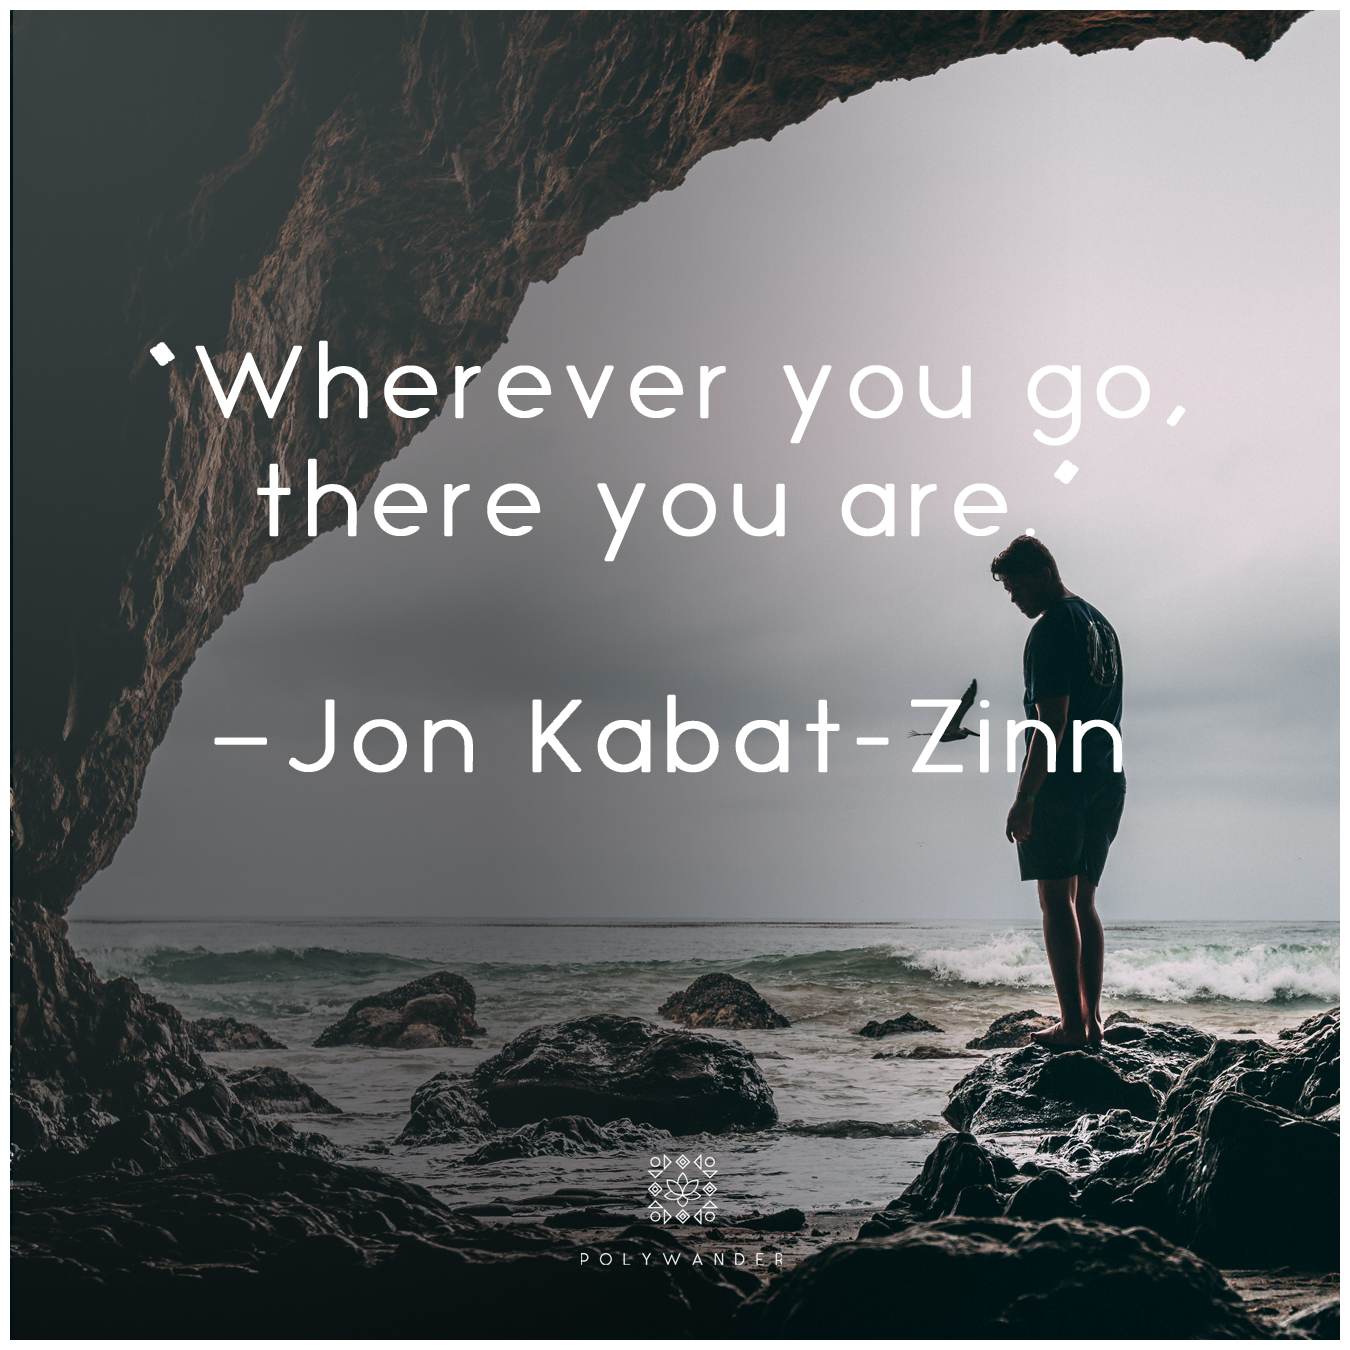 """Wherever you go, there you are."" Jon Kabat Zinn"